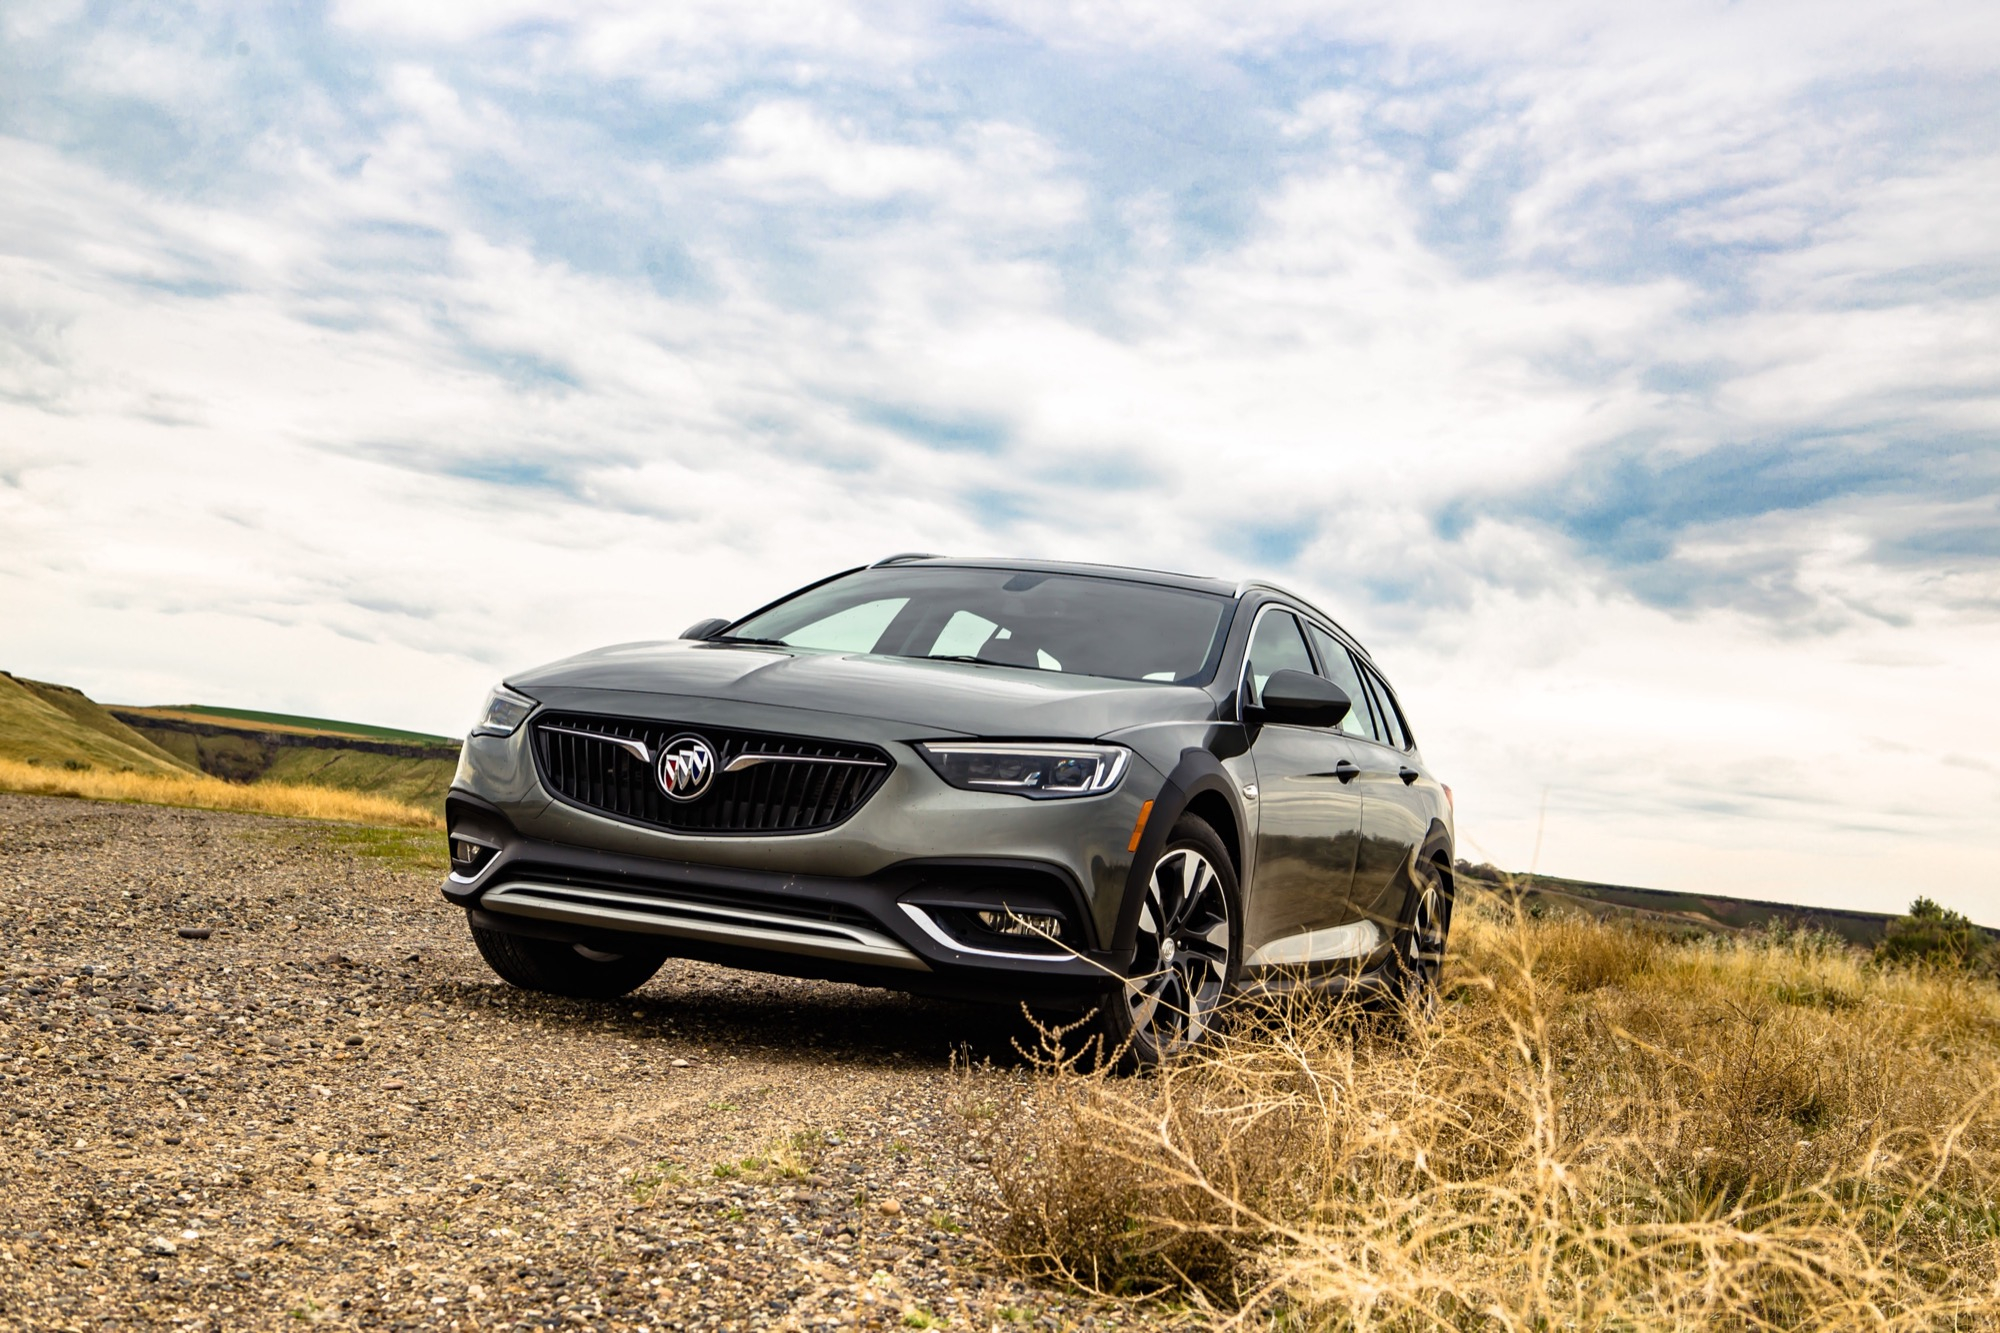 Buick Regal Discount Totals $6,250 In February 2020 | Gm New 2022 Buick Regal Sportback Review, Price, 0-60